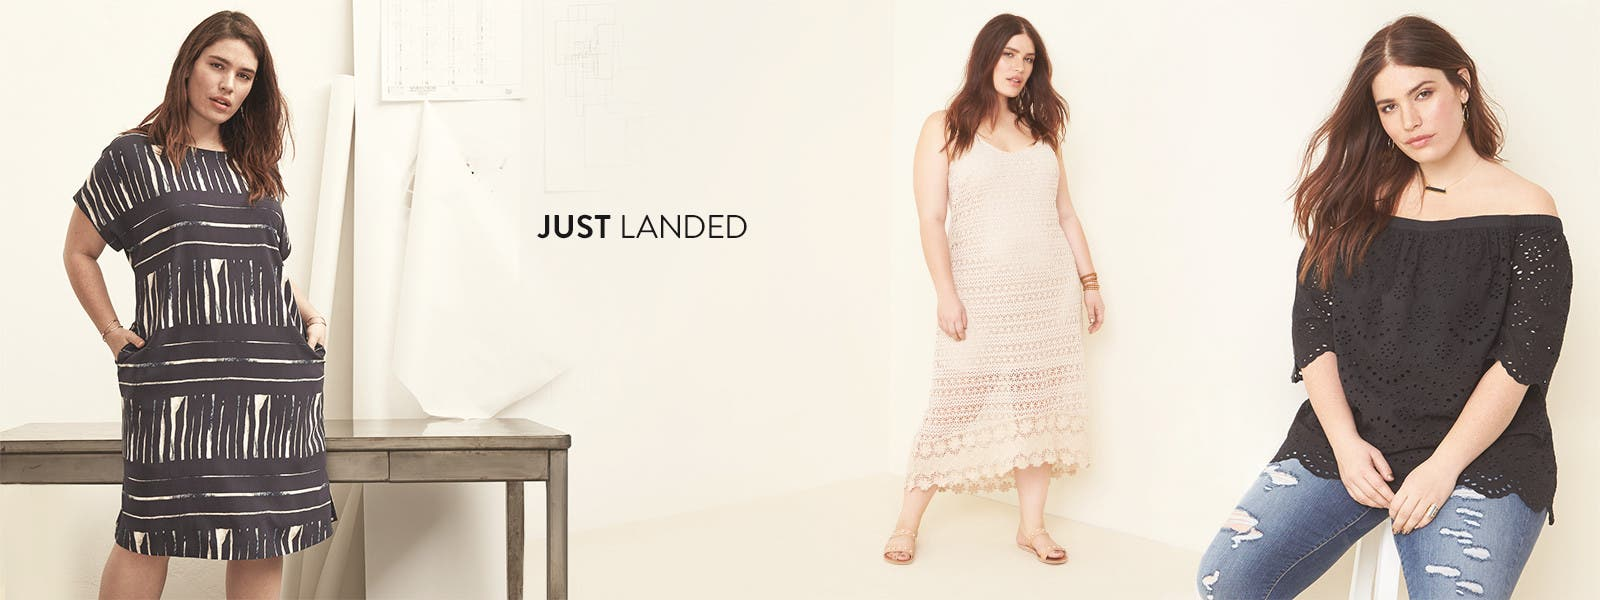 Just landed: summer plus-size new arrivals.